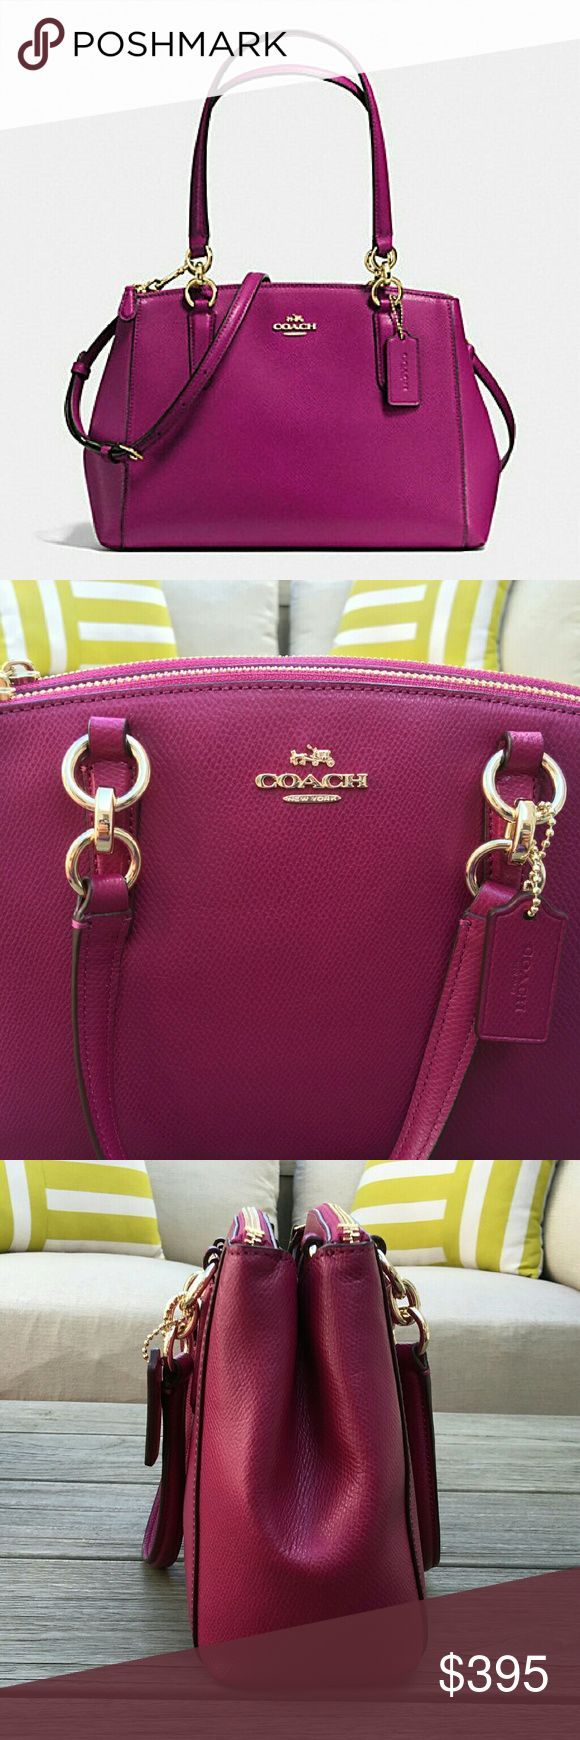 17 Best Ideas About Coach Bags On Pinterest Coach